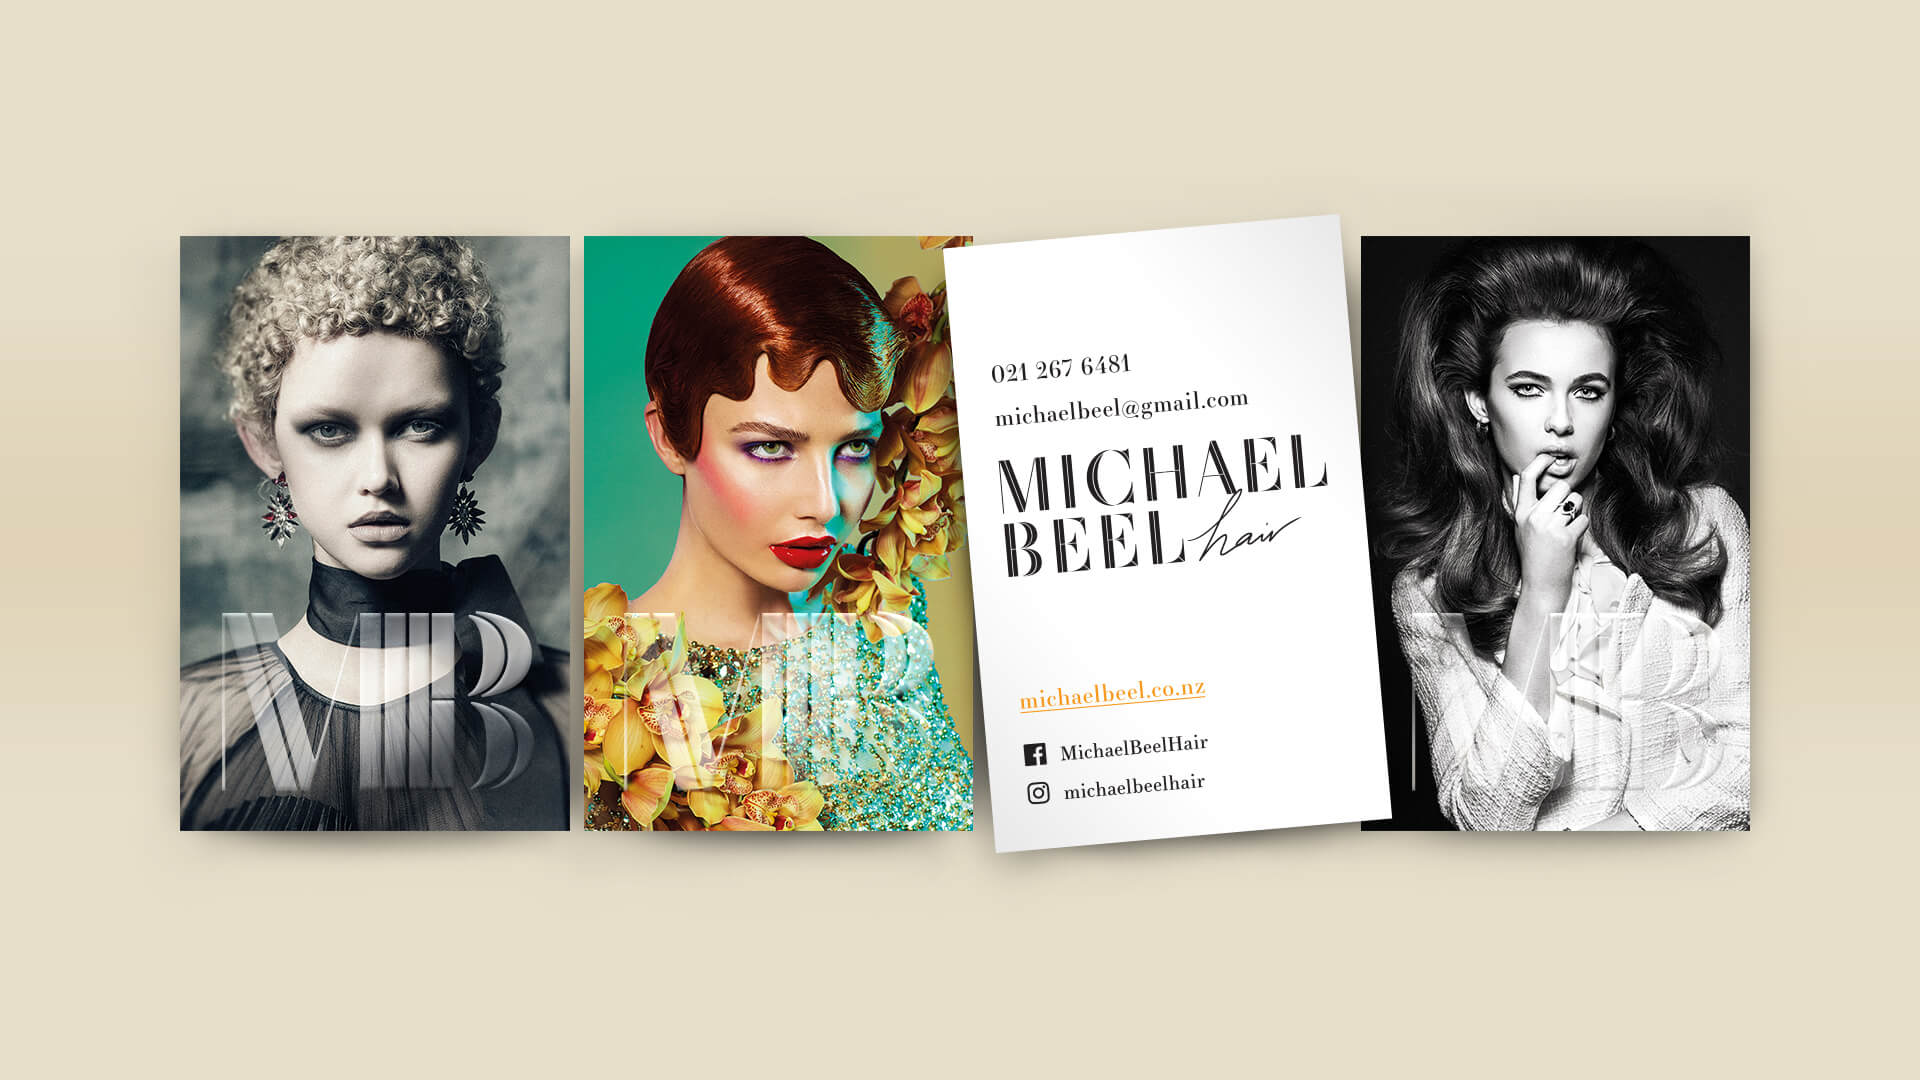 Michael Beel Hair Business card design